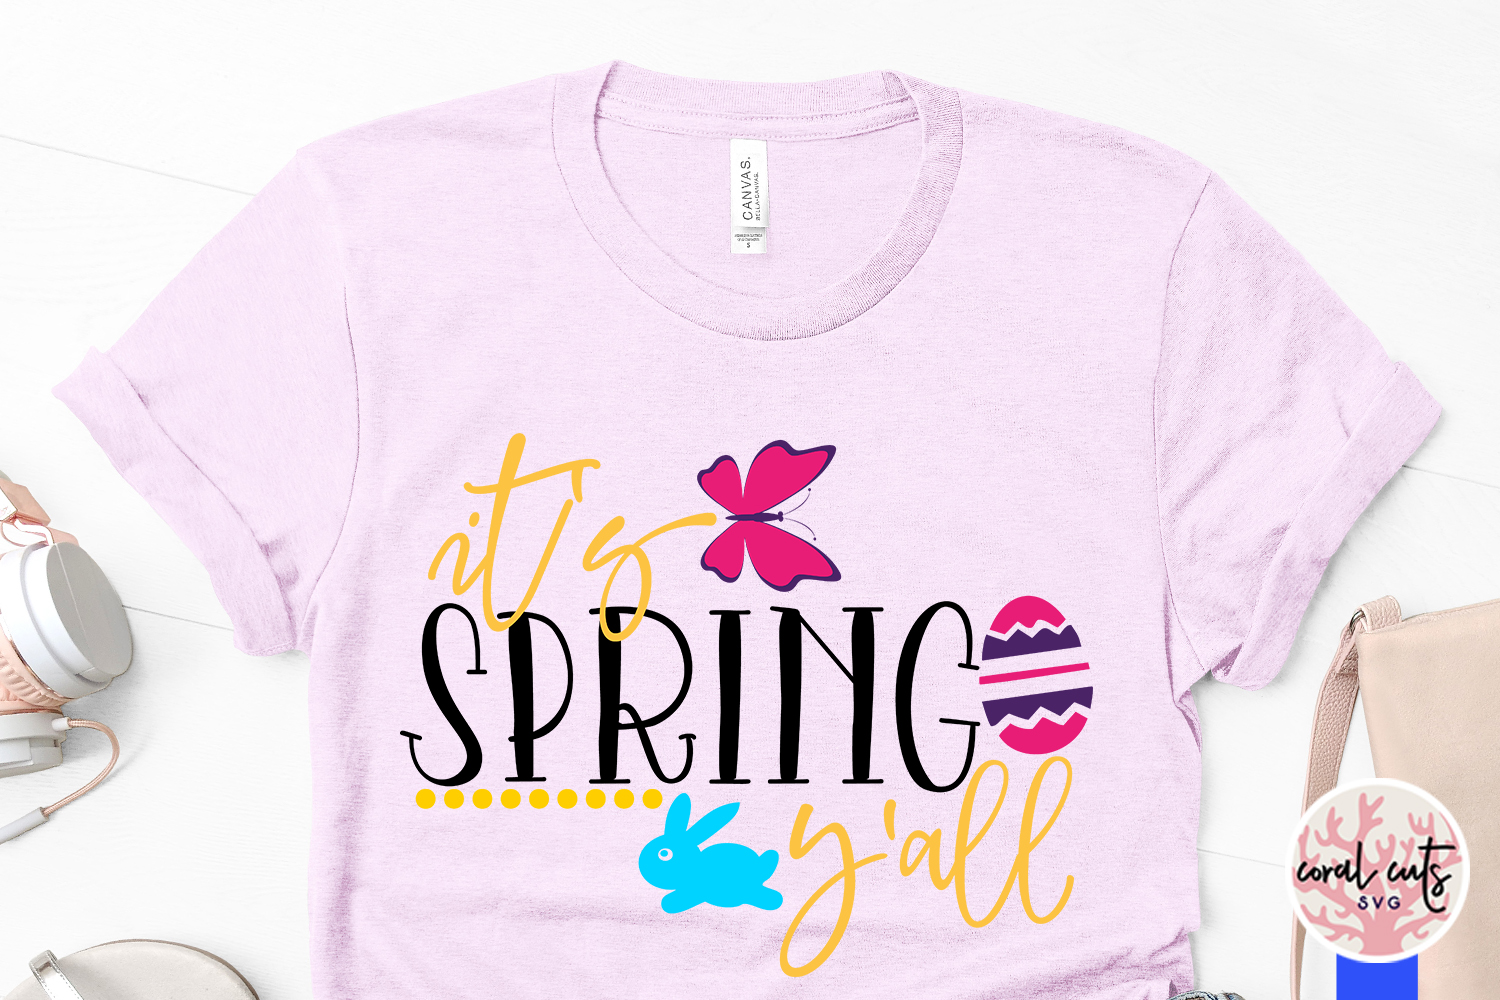 It's spring y'all - Easter SVG EPS DXF PNG Cutting File example image 3